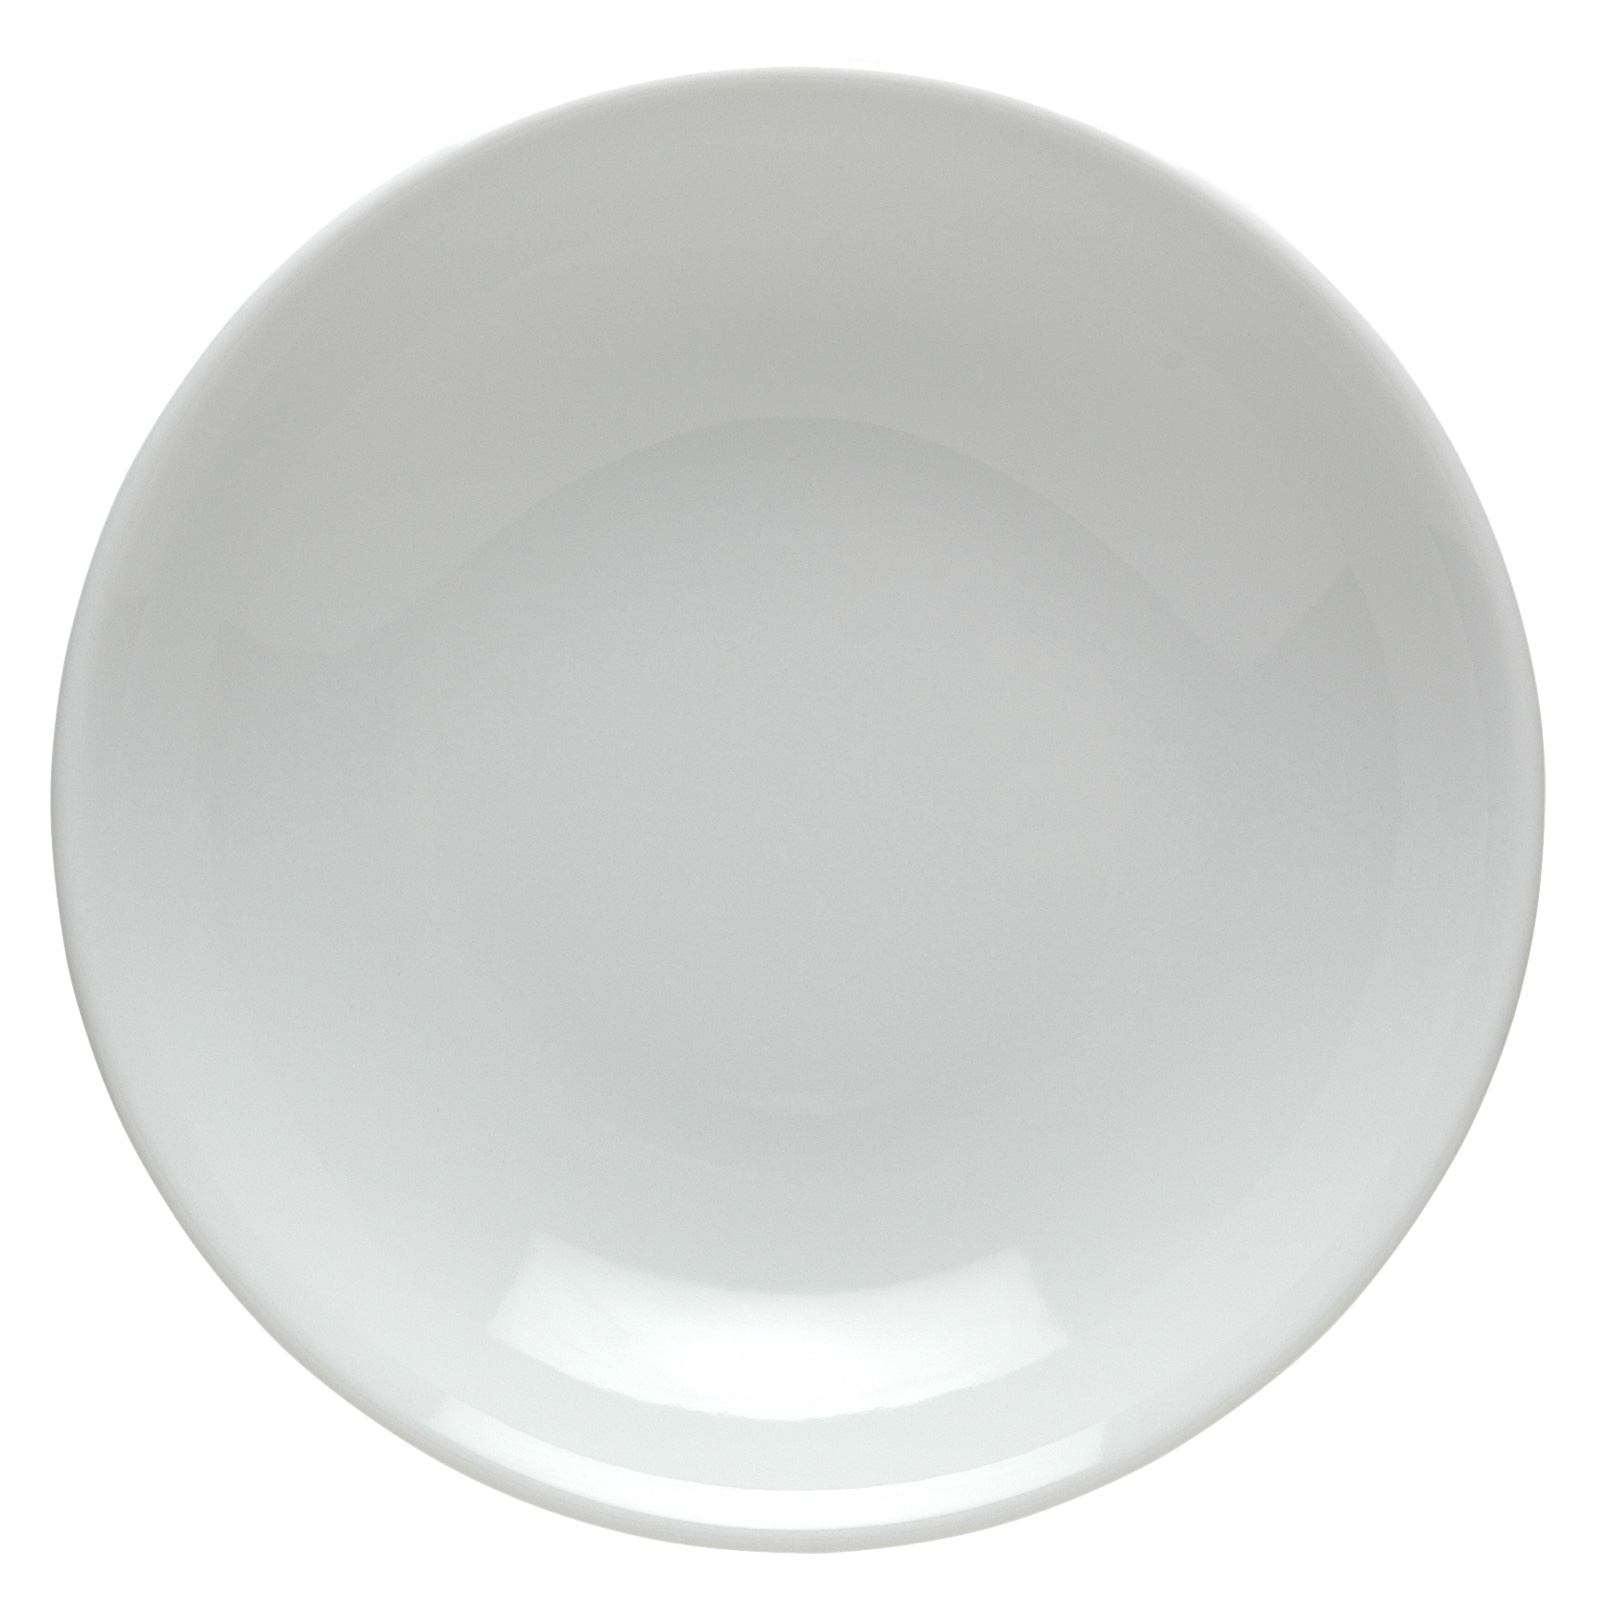 Hotel Collection Plates: Hotel Flat Plate Extra Large